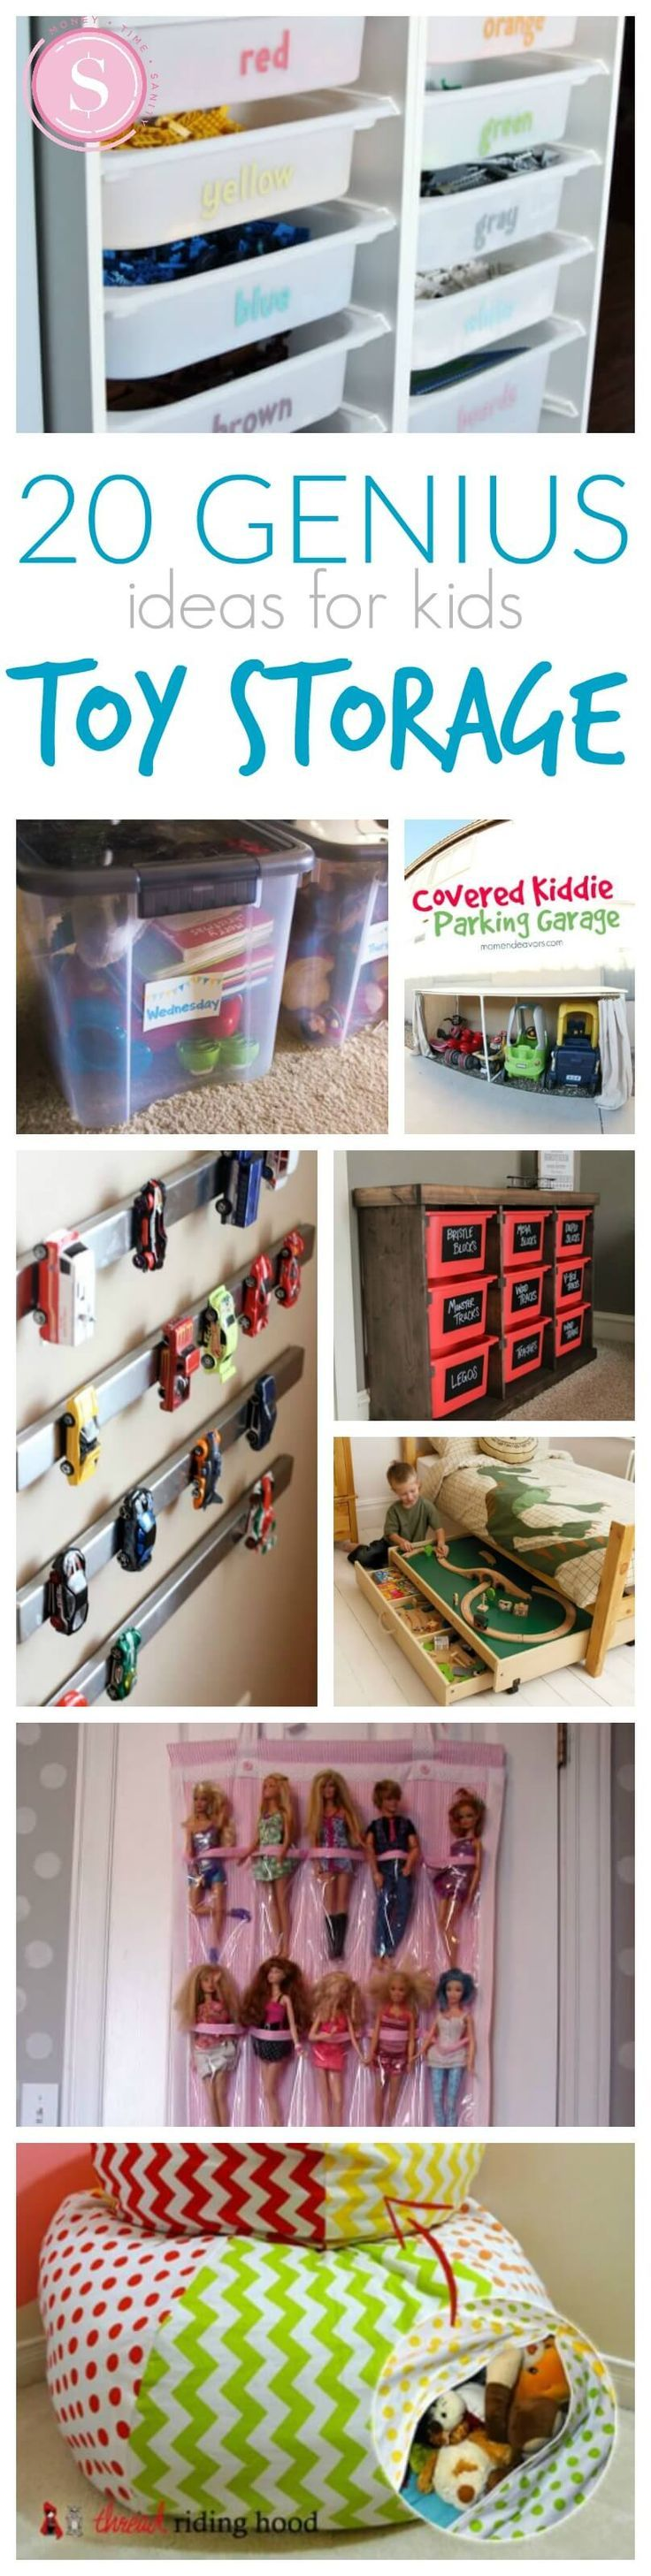 20 Genius Ideas for Organizing Your Kid's Rooms! Great tips and tricks for  Spring Cleaning  Diy Toy StorageBaby ...